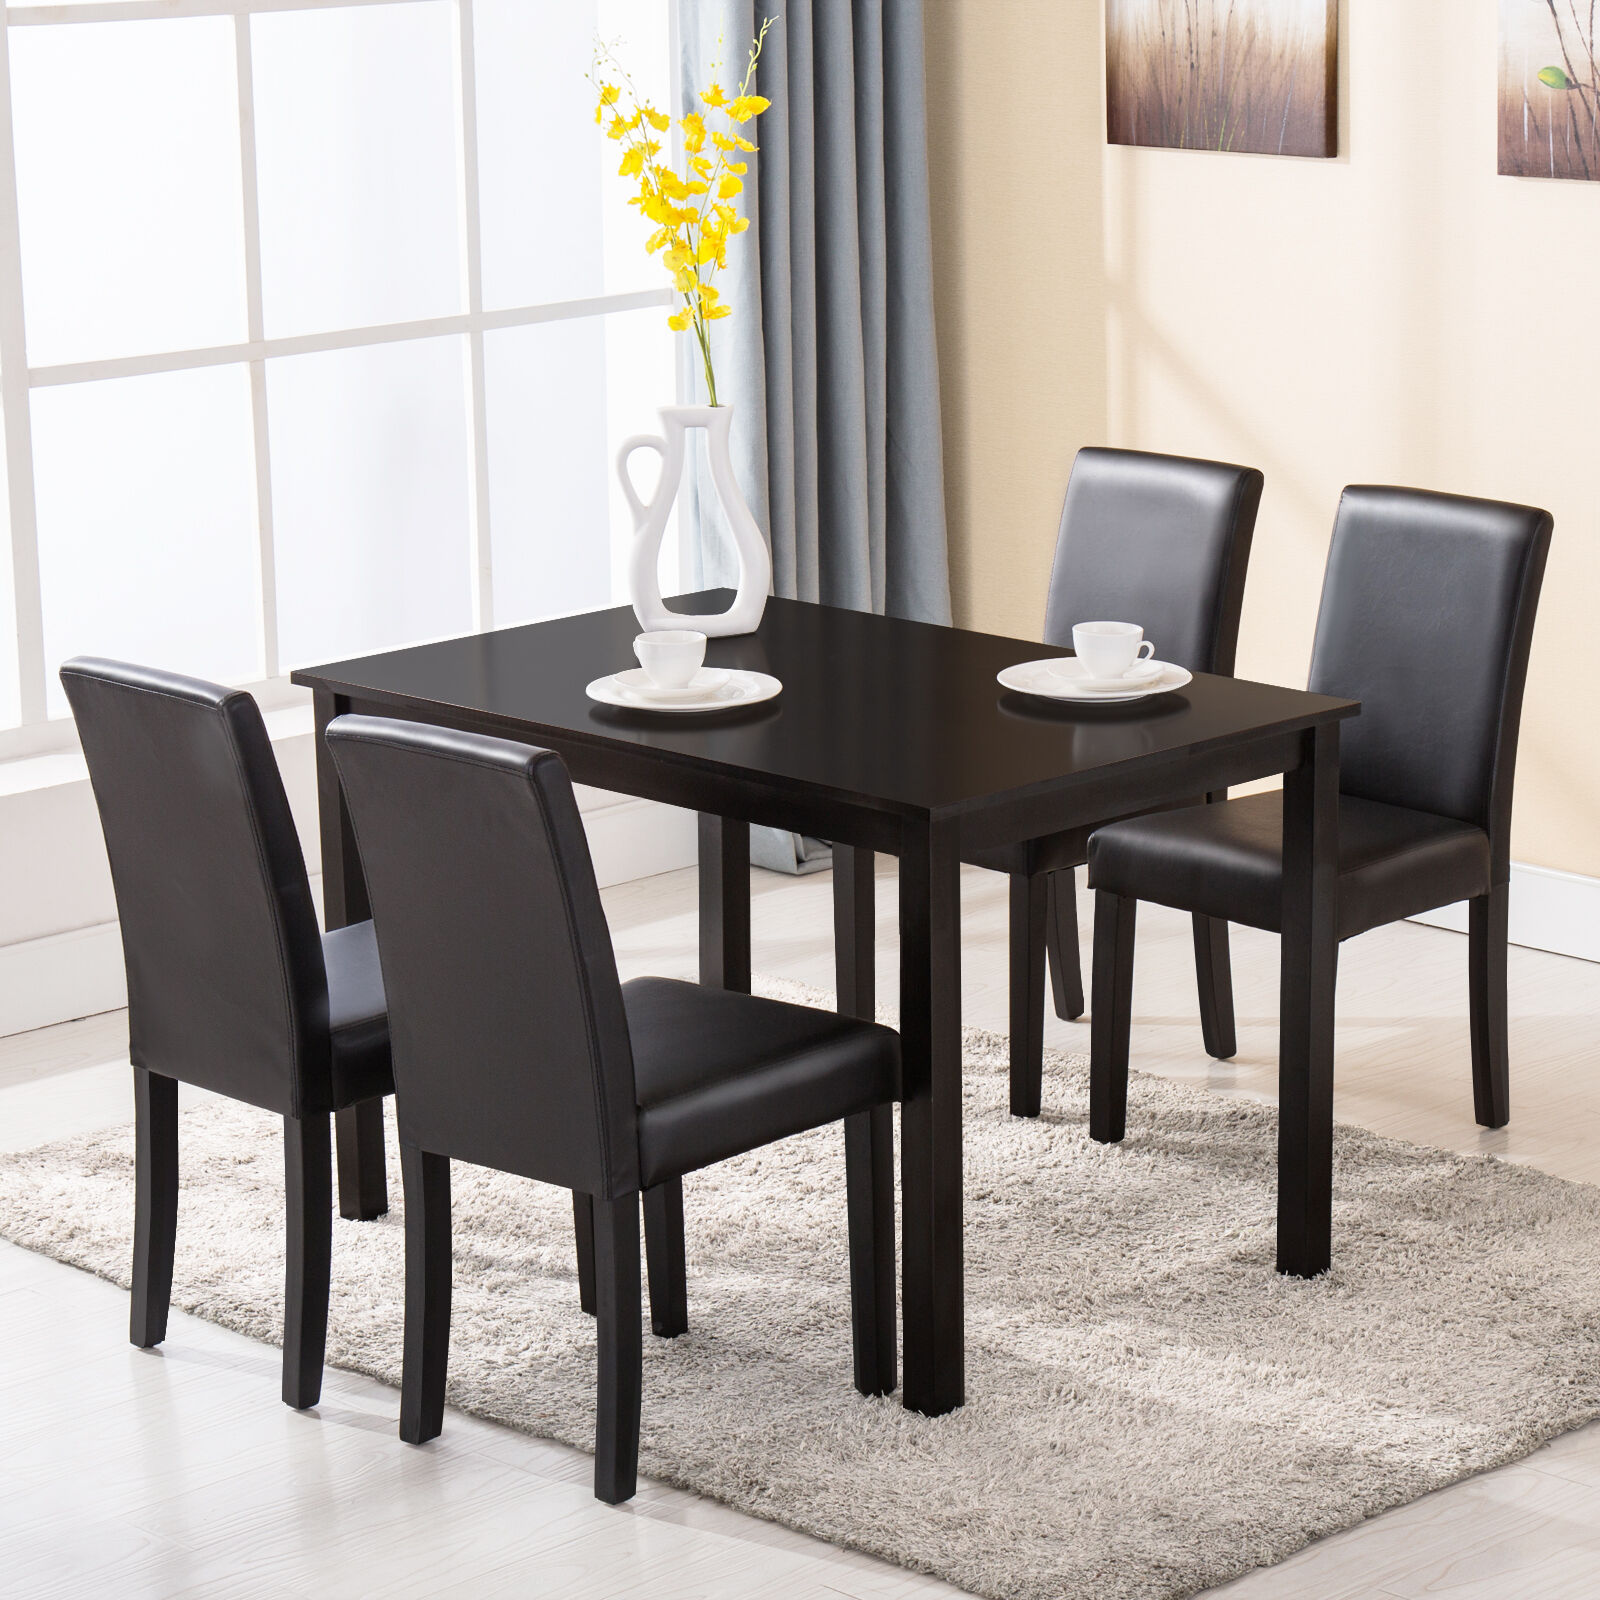 details about 5 piece dining table set 4 chairs wood kitchen dinette